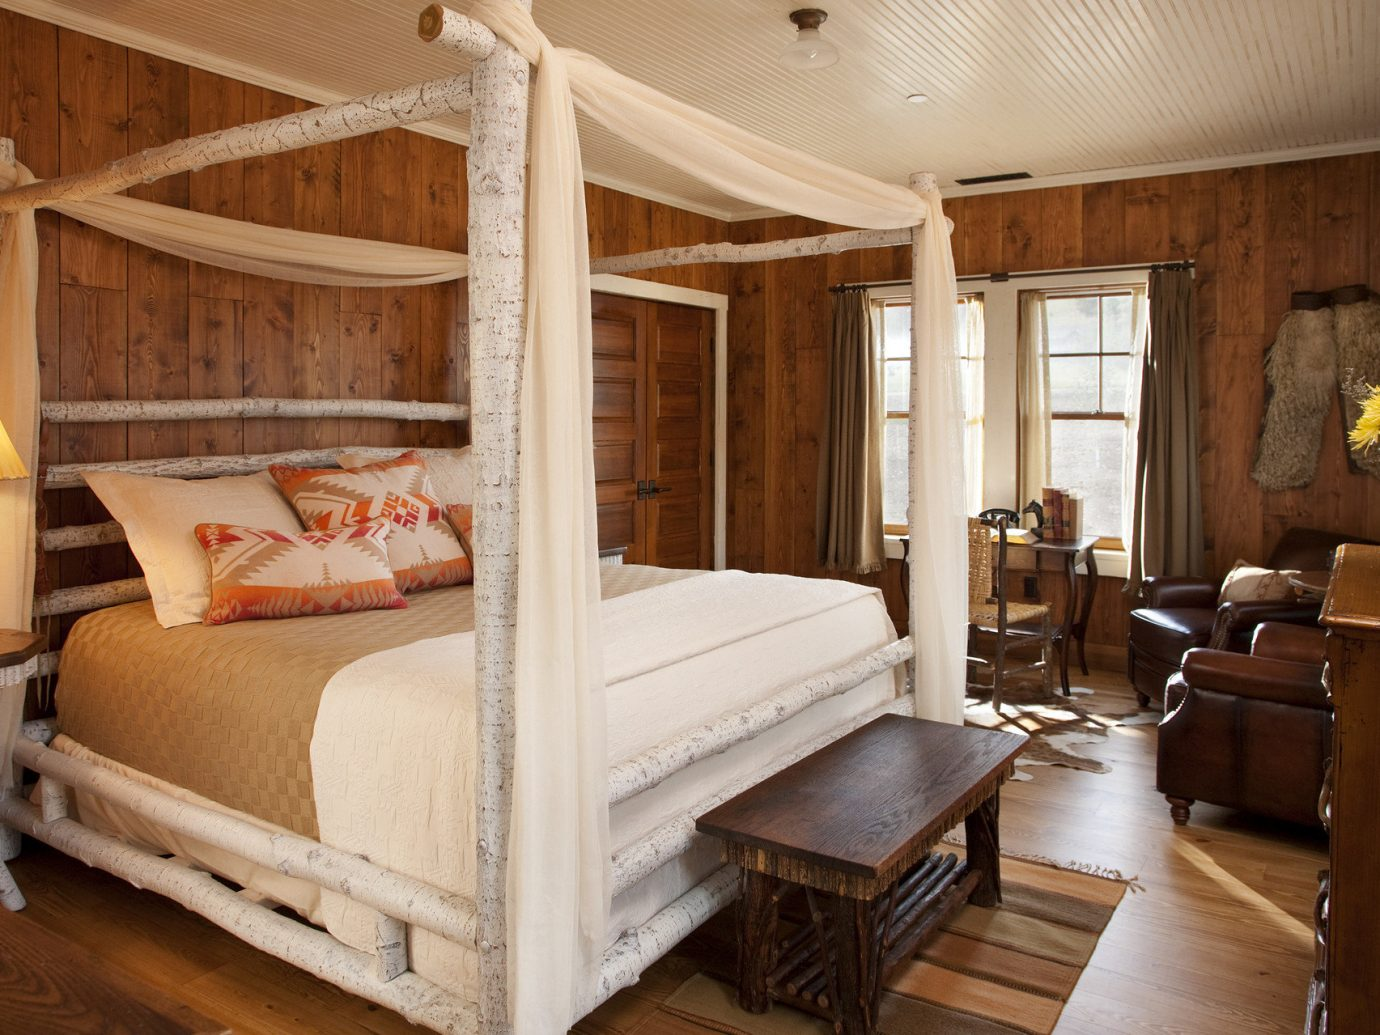 Glamping Luxury Travel Trip Ideas indoor floor room bed property Bedroom wooden cottage estate living room hardwood home Suite interior design four poster furniture wood log cabin farmhouse real estate